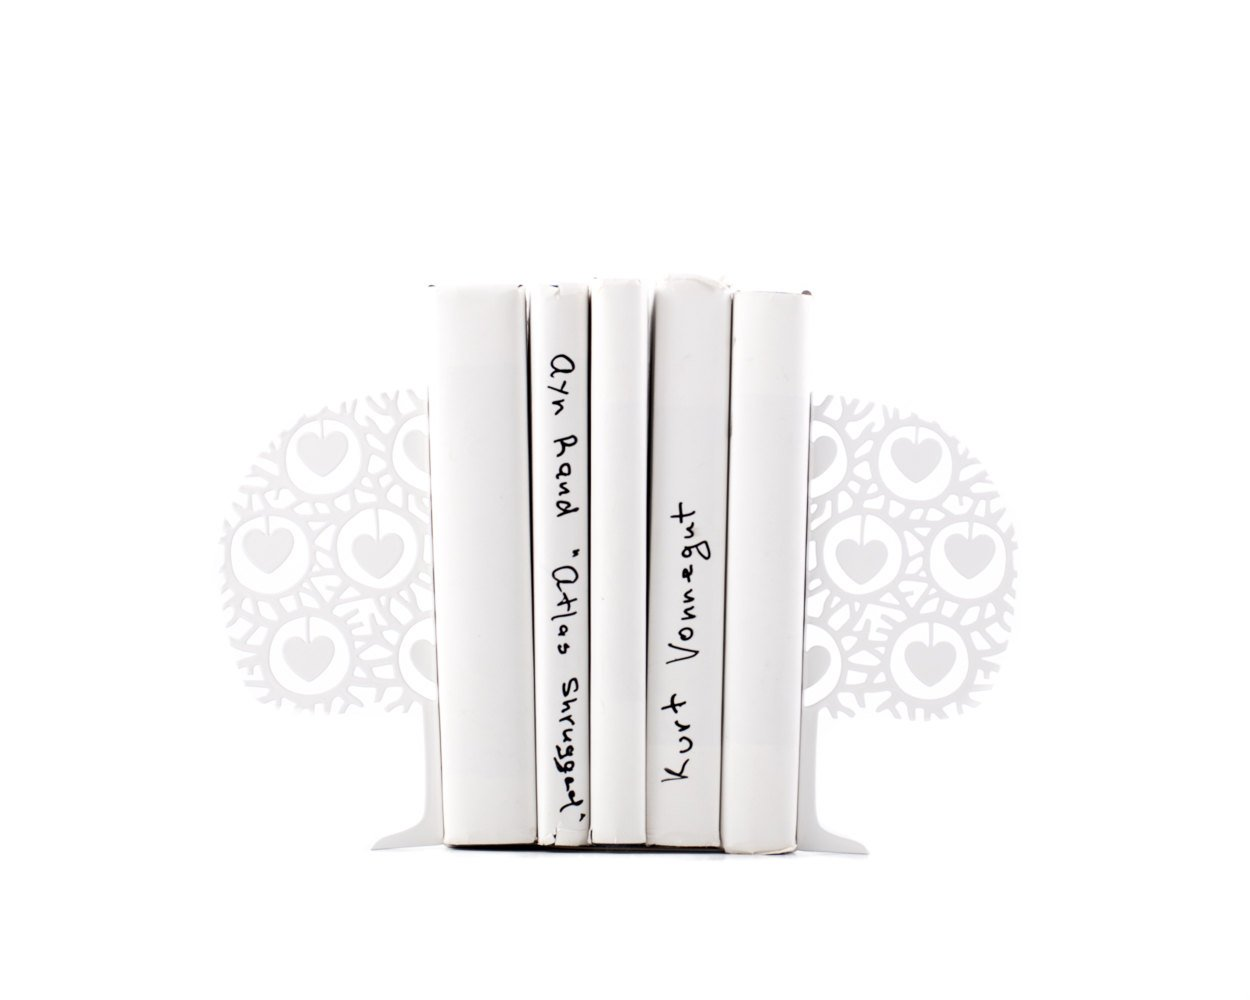 Minimalistic bookends - Danish heart tree - FREE SHIPPING Scandinavia inspired functional decor (white) // book holders // gift for reader - Design Atelier Article